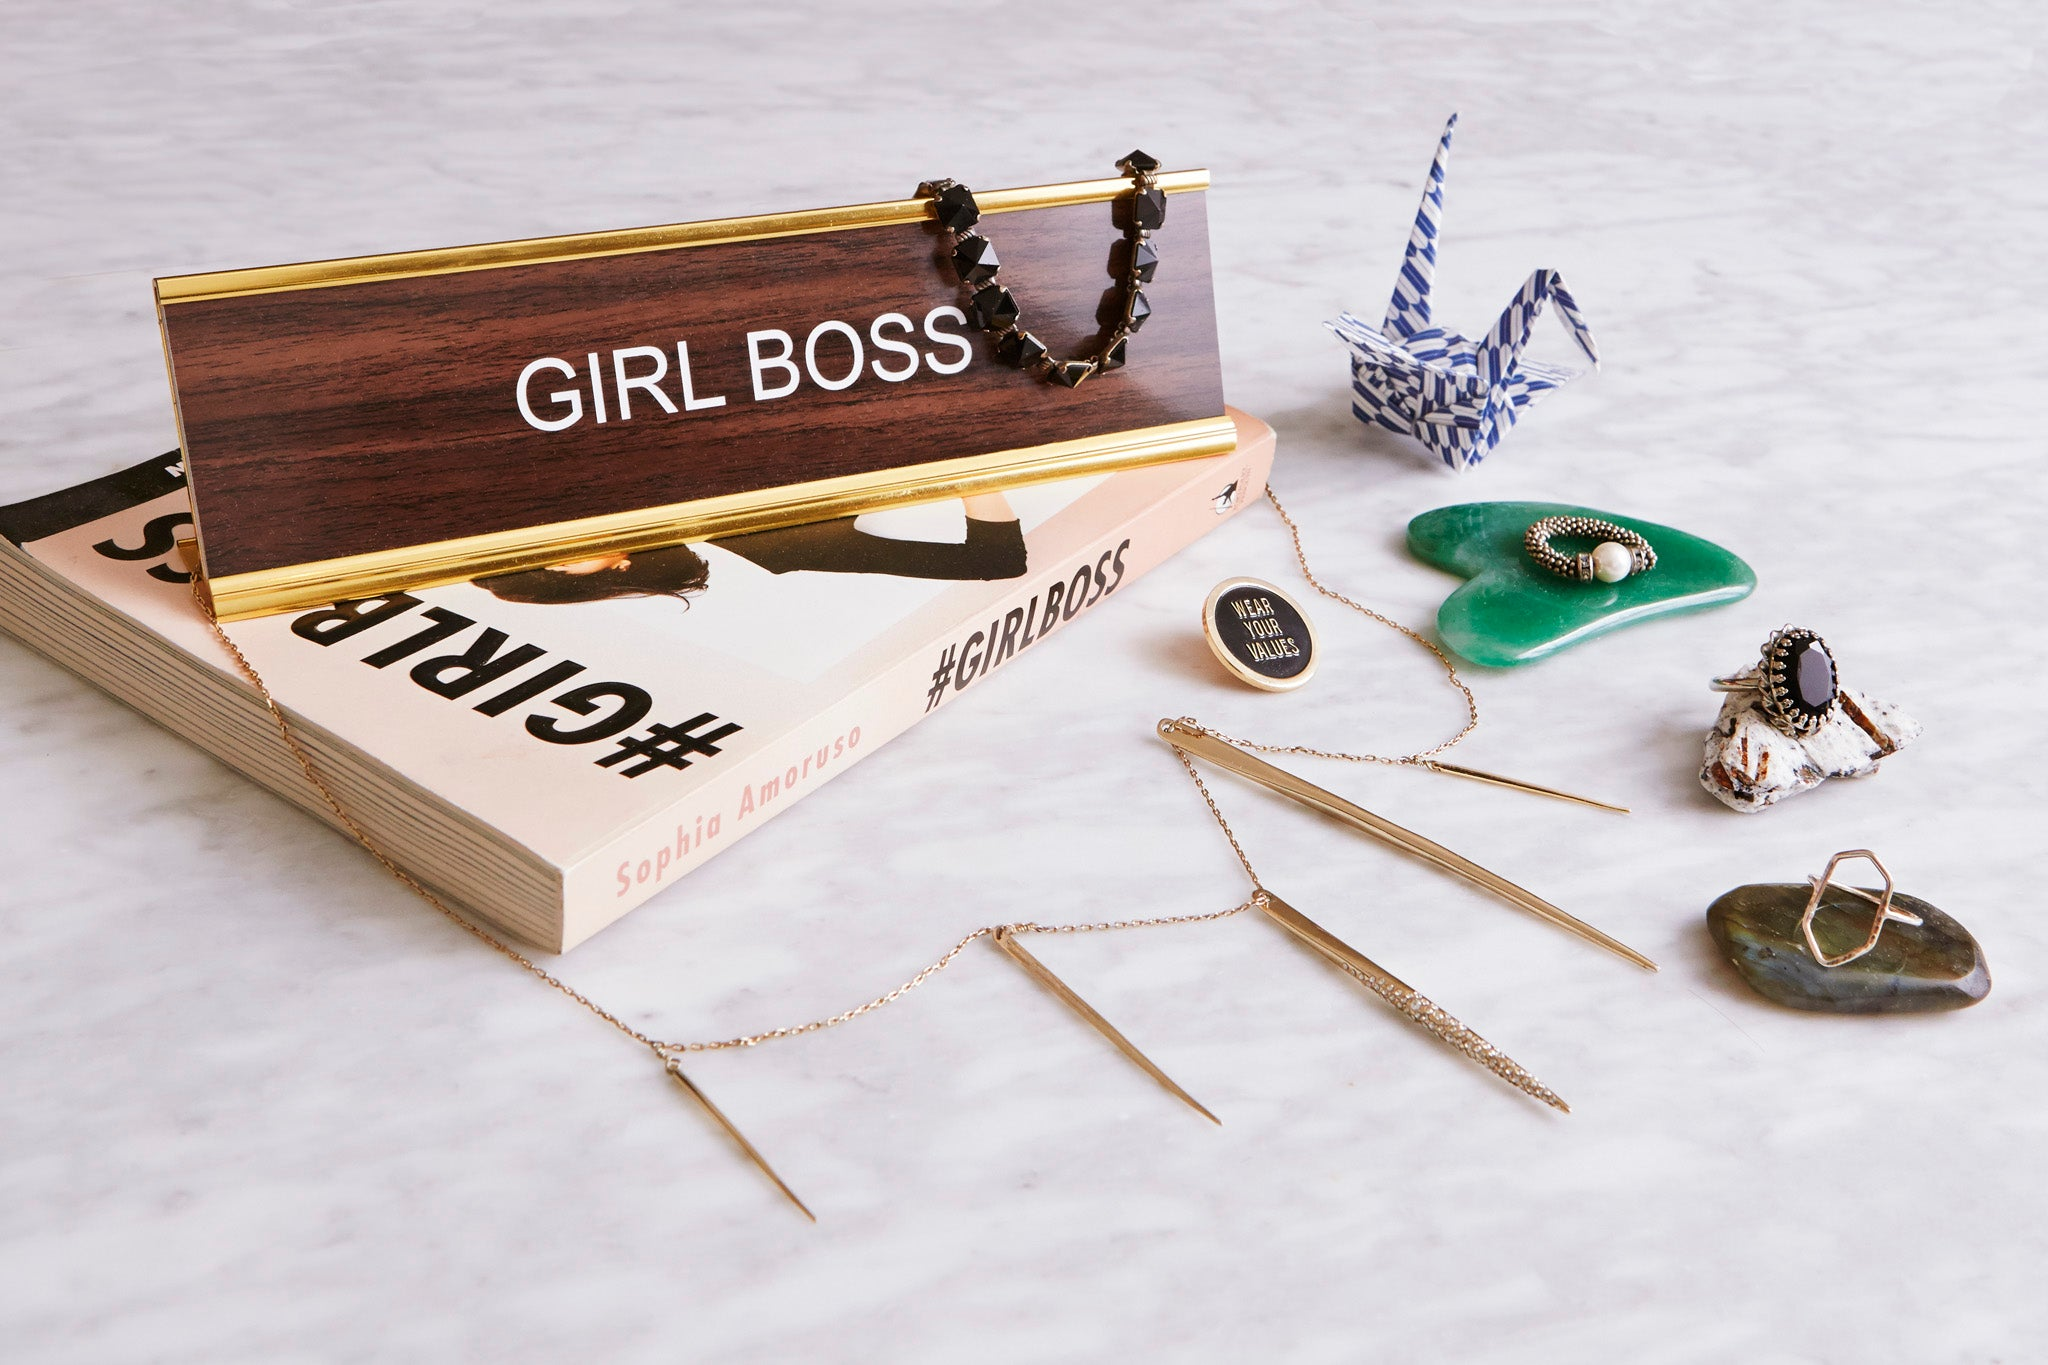 girl boss nameplate and assorted jewelry from britt bergmeister for shiffon co.